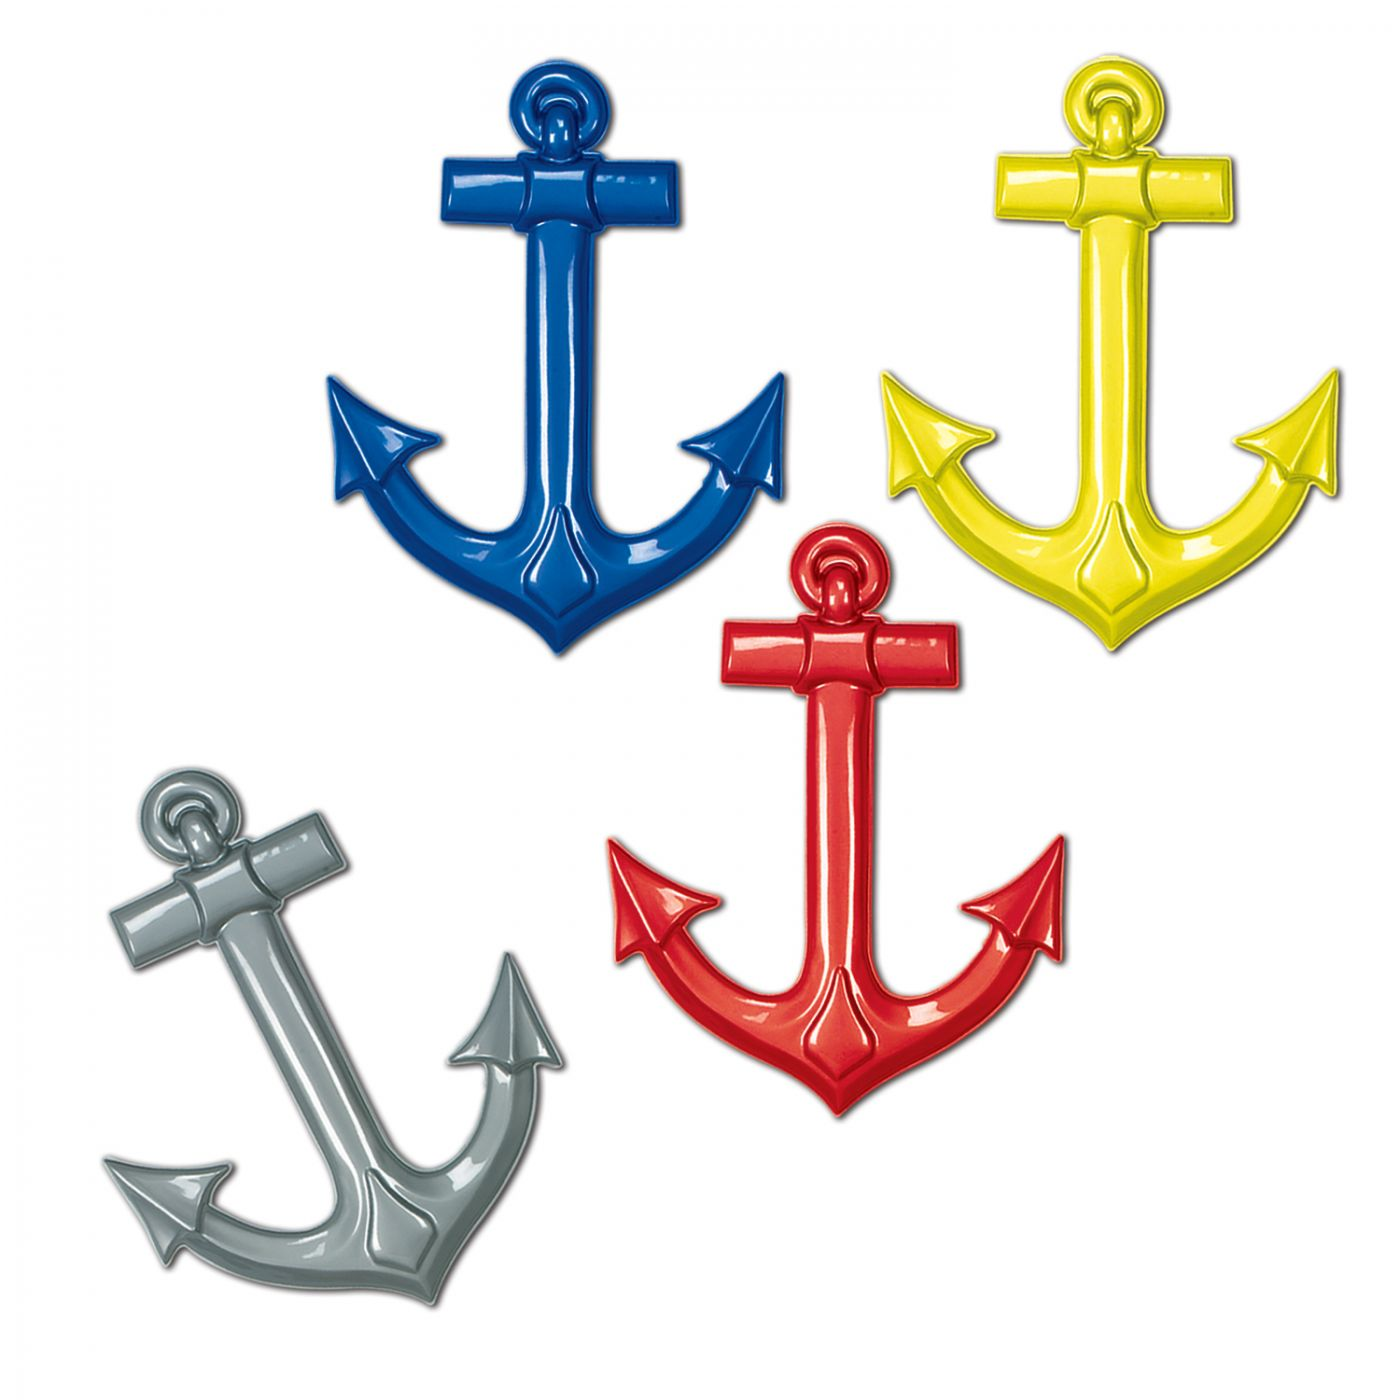 Plastic Ship's Anchors (24) image